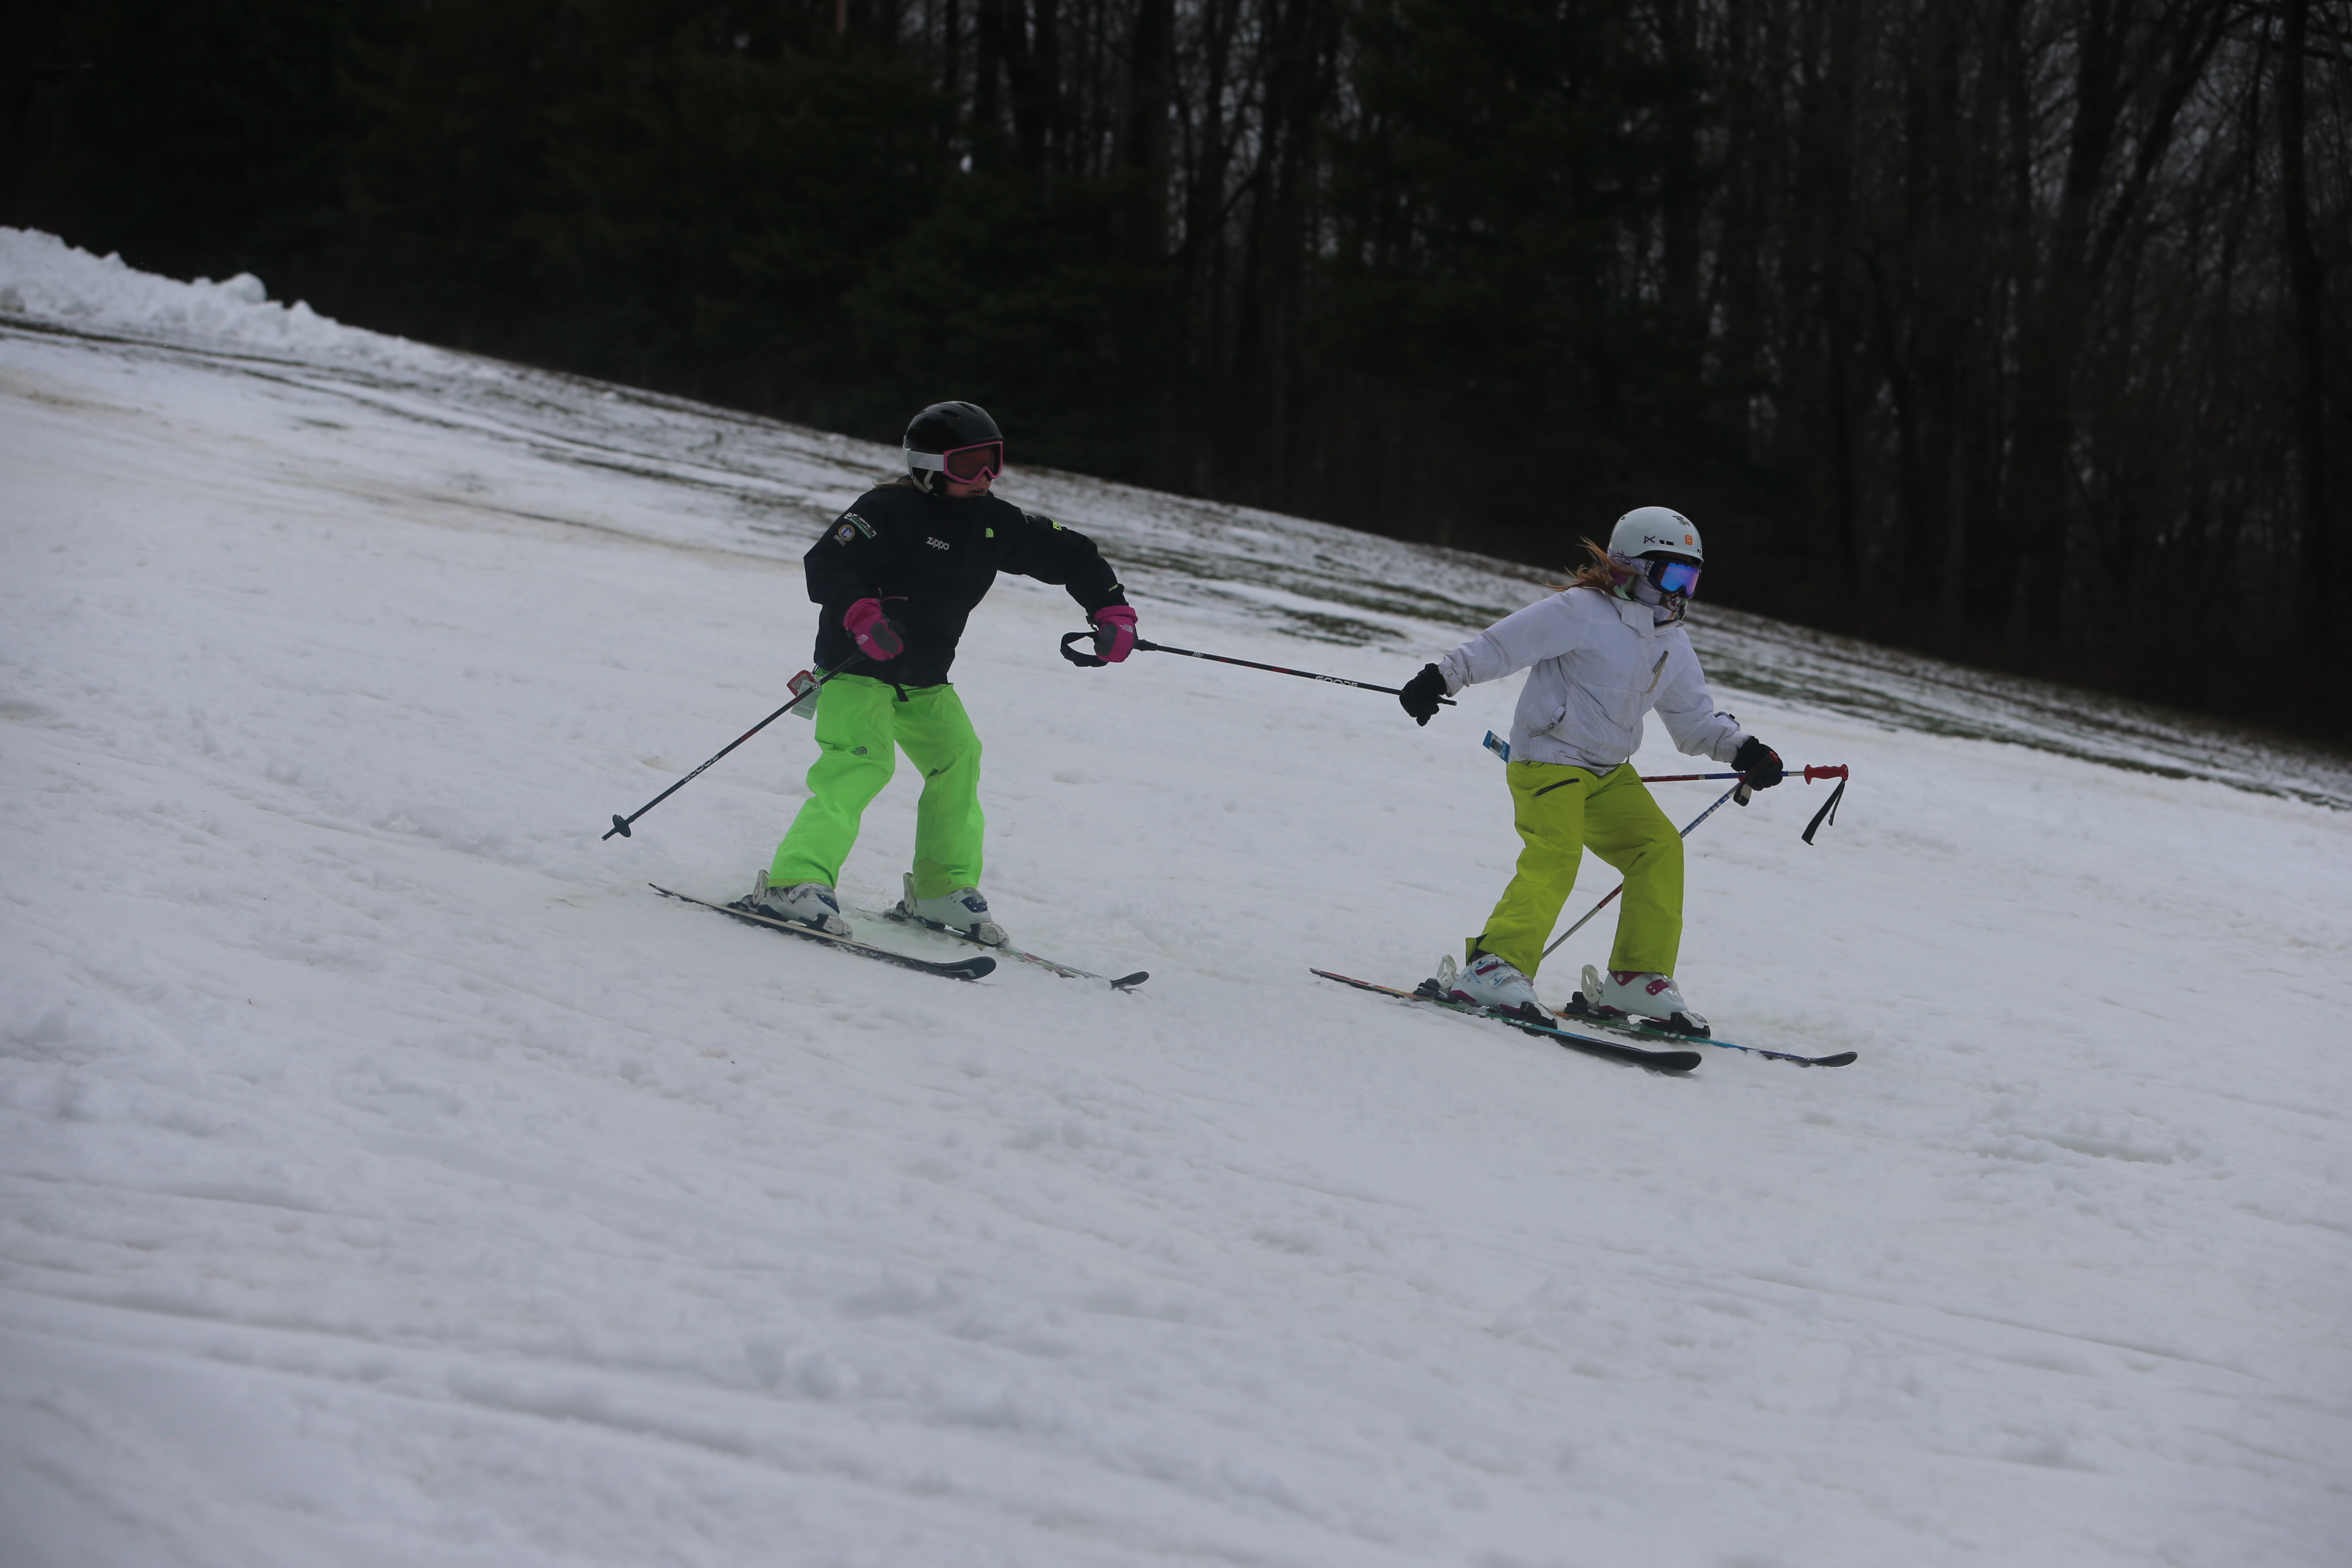 Skiers share a pole as the go down Mardi Gras on opening weekend at Holiday Valley in Ellicottville,. (John Hickey/Buffalo News)